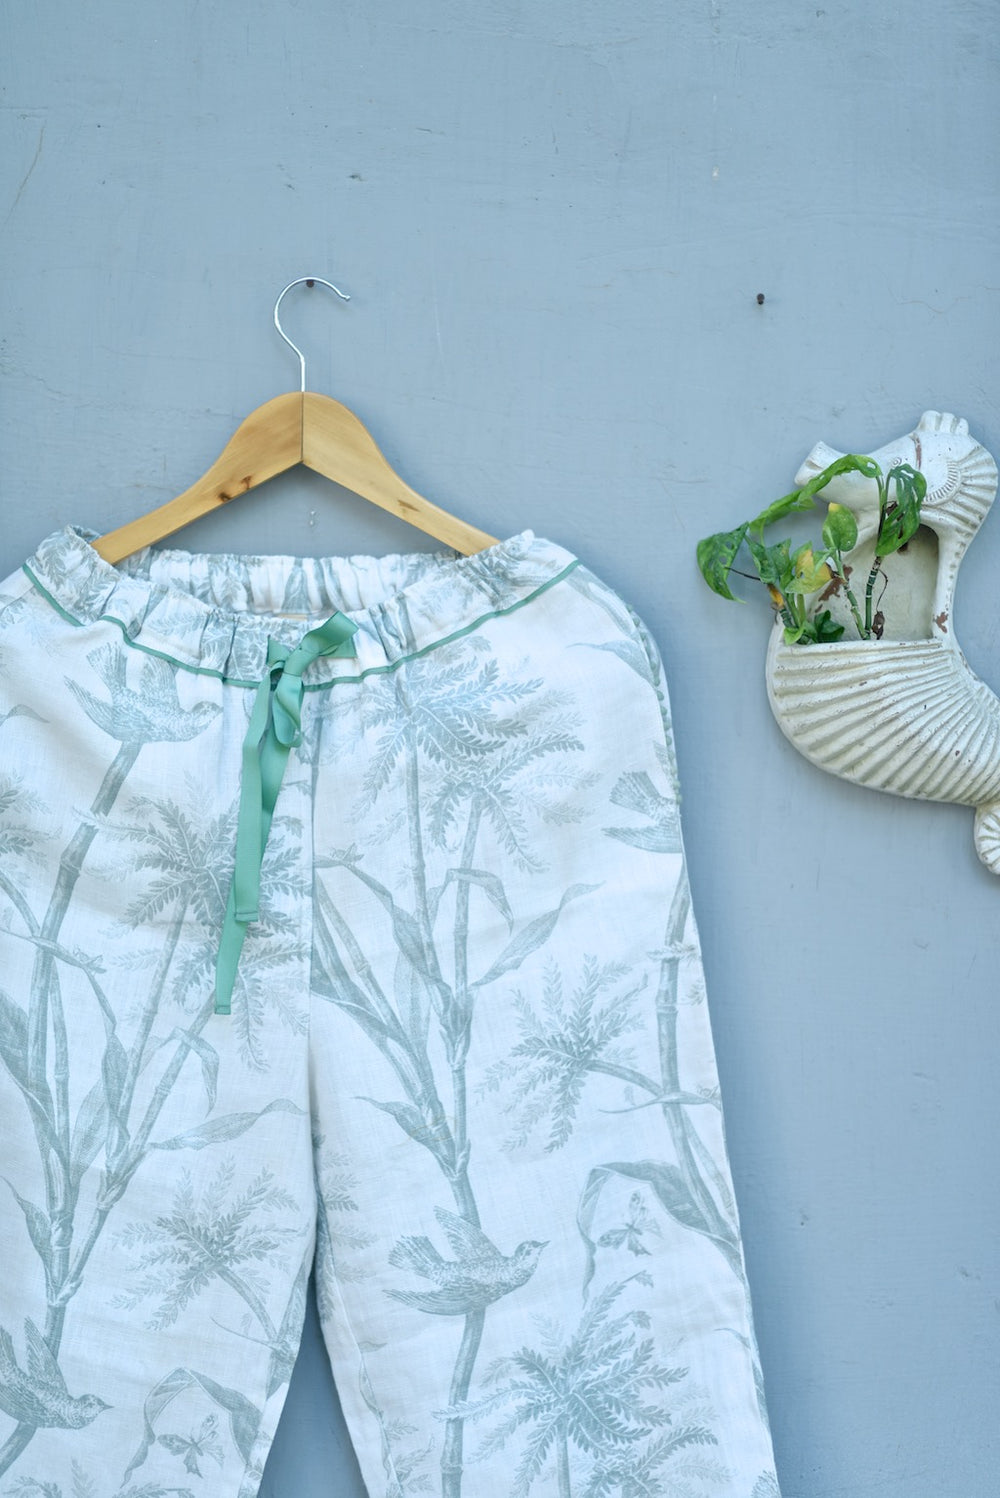 Zeme, Pure Linen Cream pajamas with Sage Color Bird Print with Pom Poms